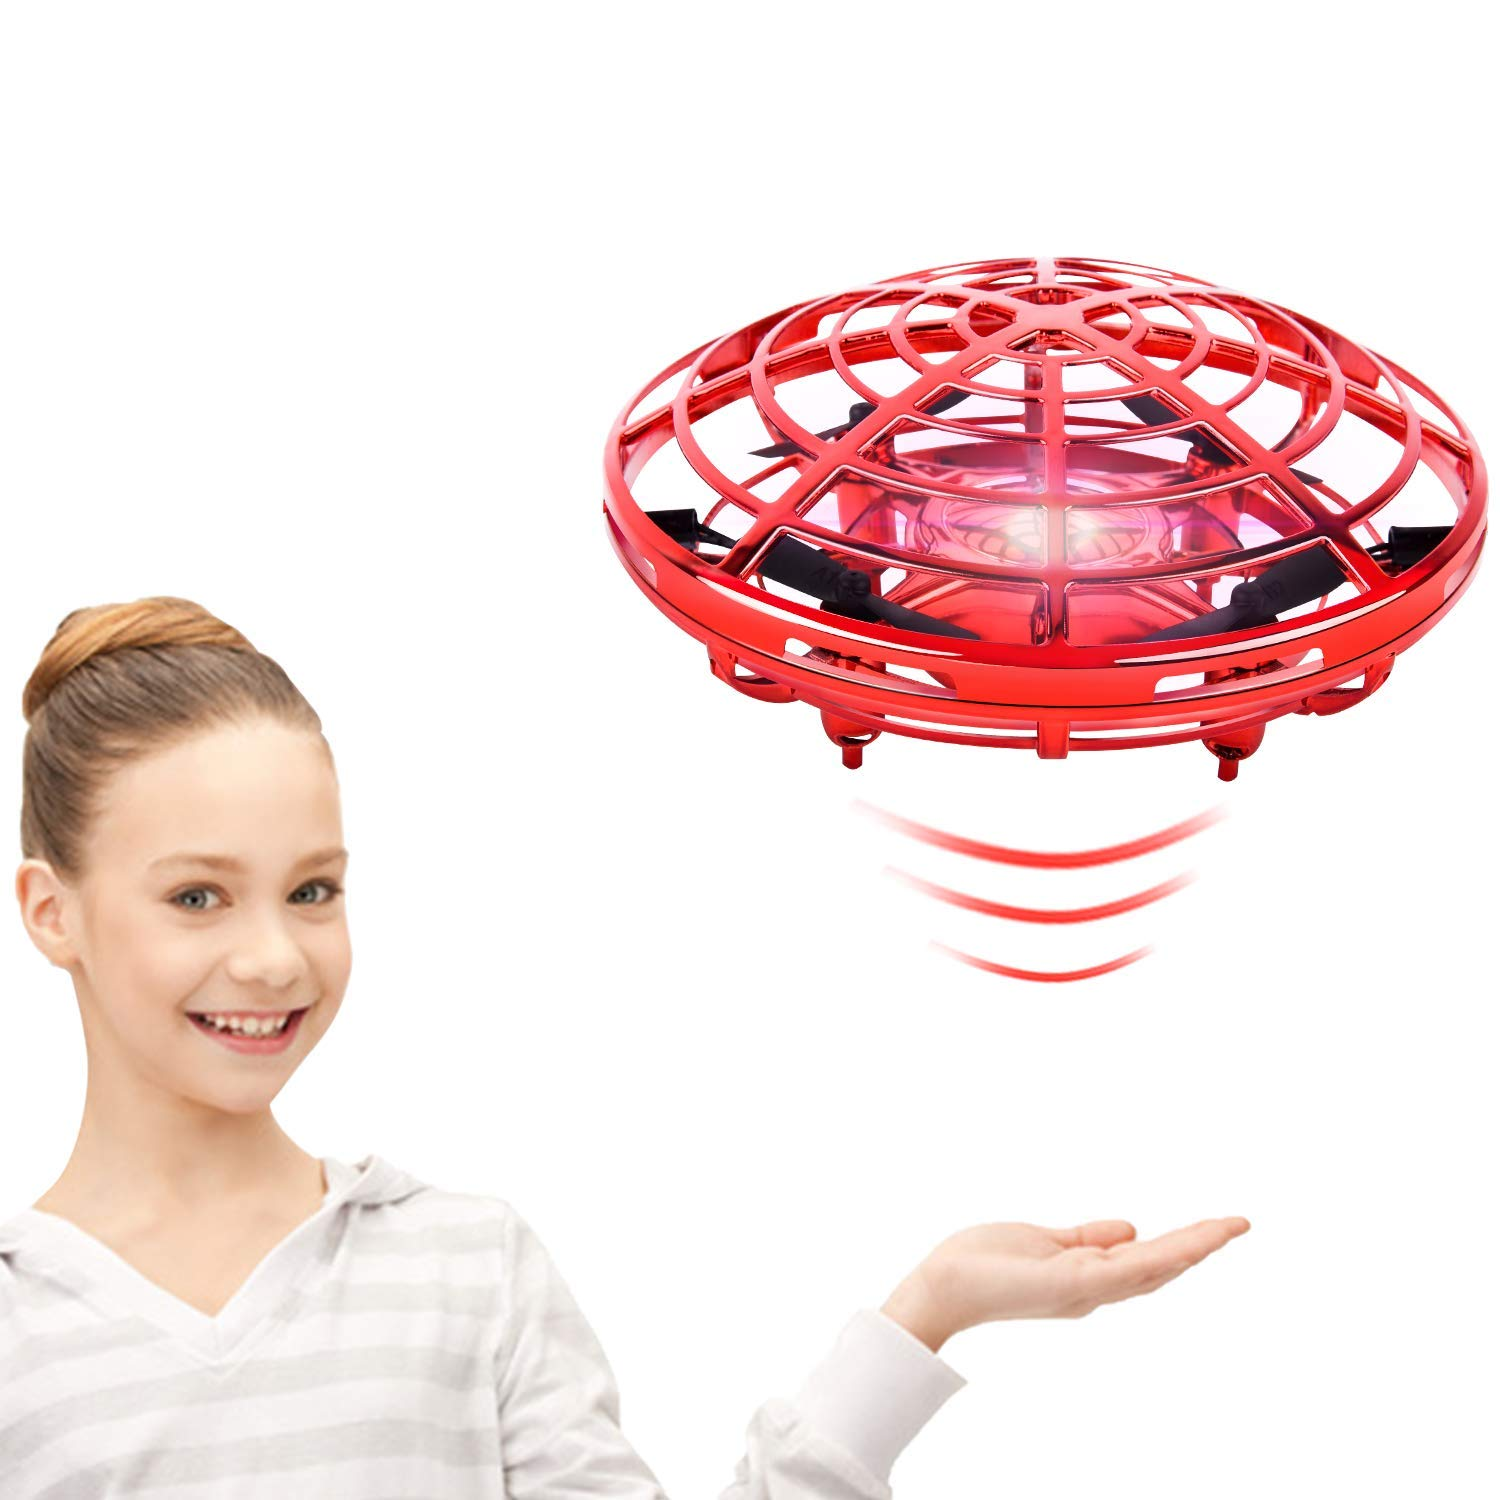 Boys Toys Flying Toys for Kids,Scoot Hands Free Mini Flying Ball Drones with Light and 360°Rotating,Easy Operated Indoor UFO Toys for 3 12 Year Old Boys or Girl by ROOYA BABY